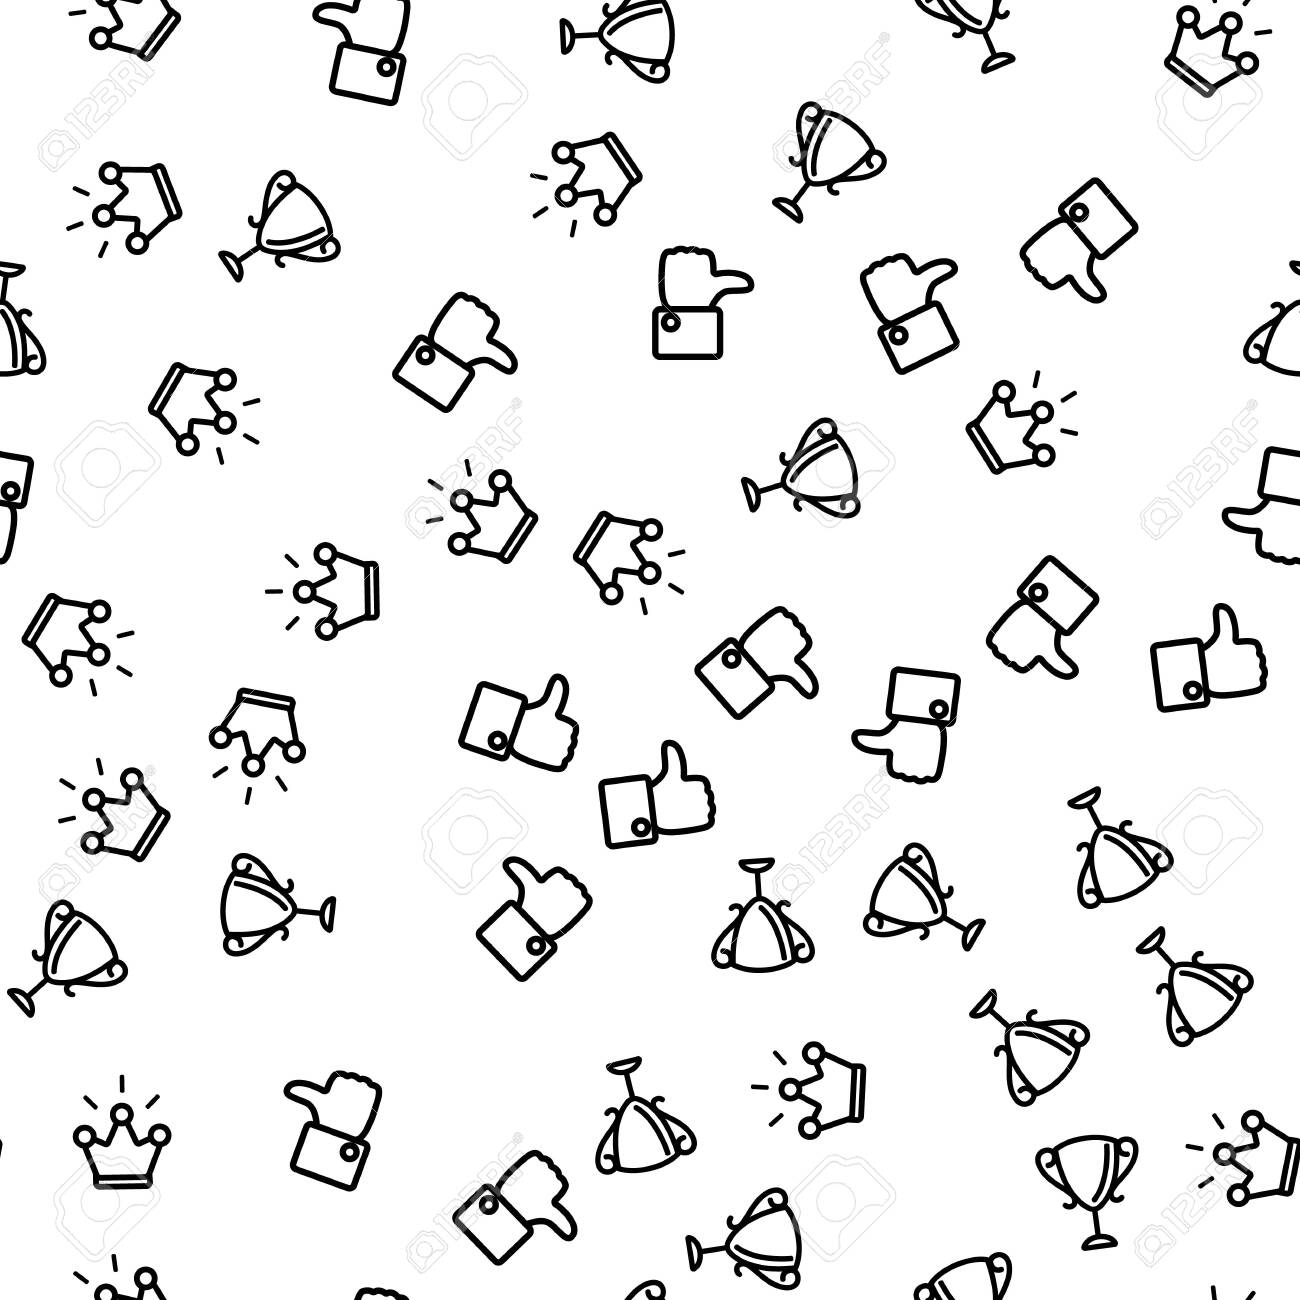 Congratulation Winner Seamless Pattern Vector. Thumb Up Applique, Cup Of Winner And Crown Monochrome Texture Icons. Victory Ceremony With Awards And Prize Template Flat Illustration - 122946181